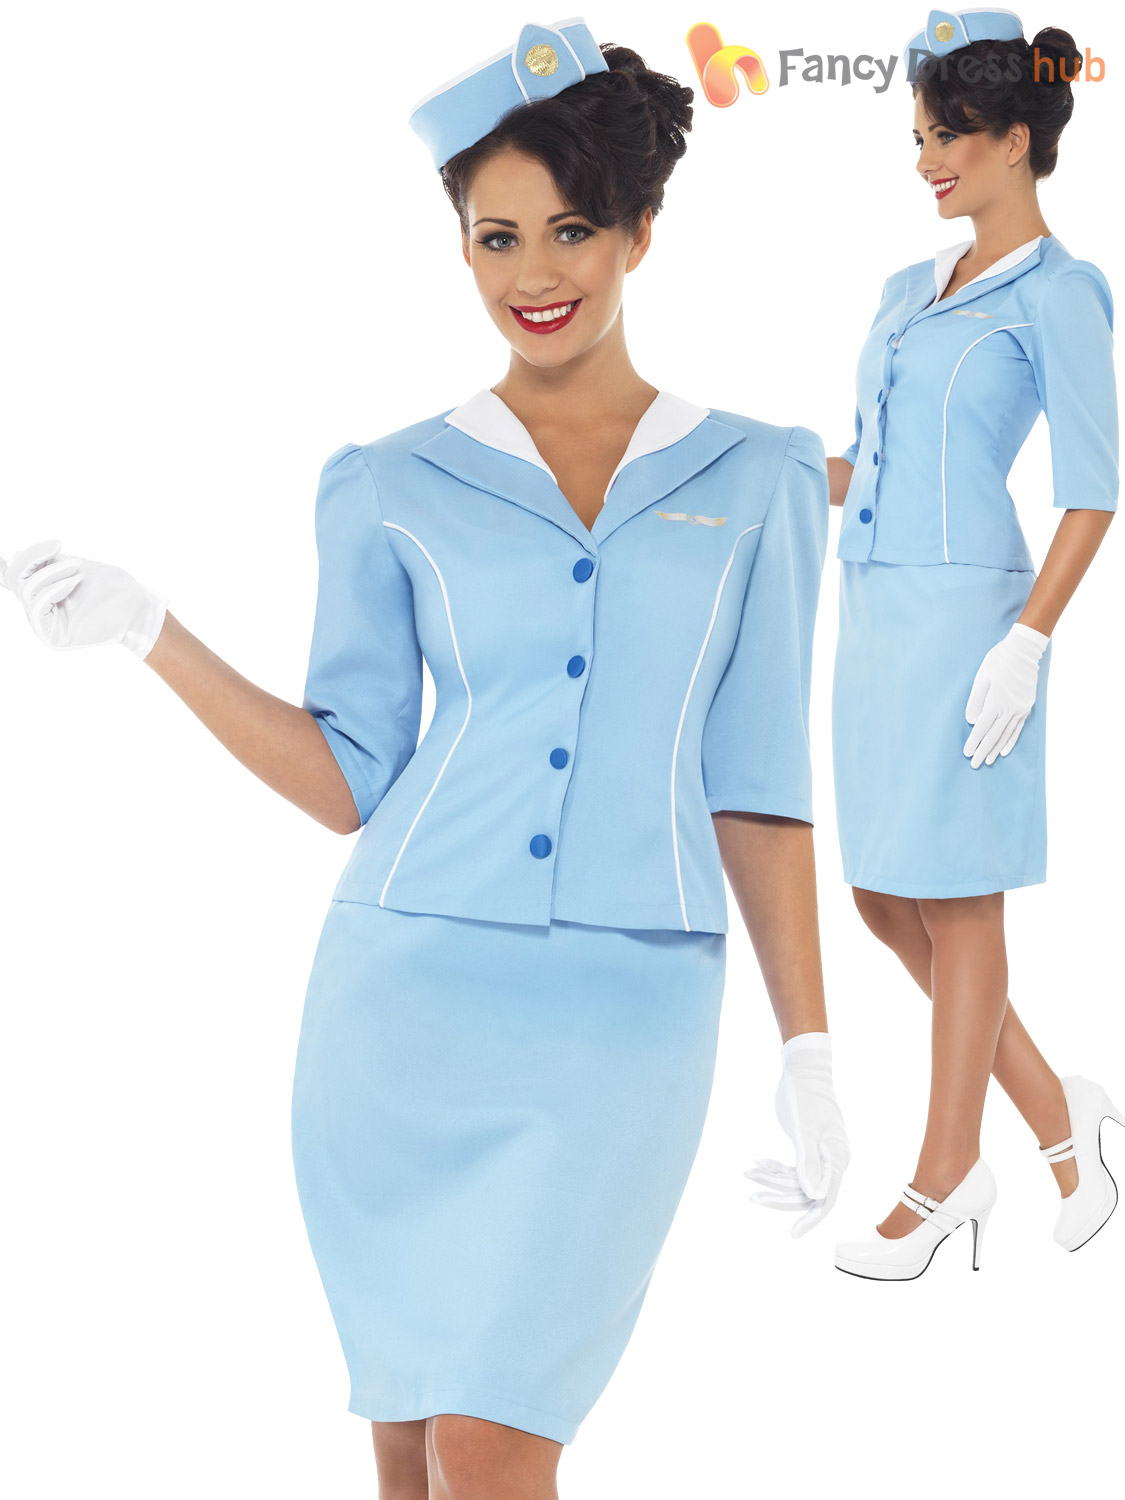 Ladies-Air-Hostess-Costume-Stewardess-Cabin-Crew-Fancy-Dress-Uniform-Womens